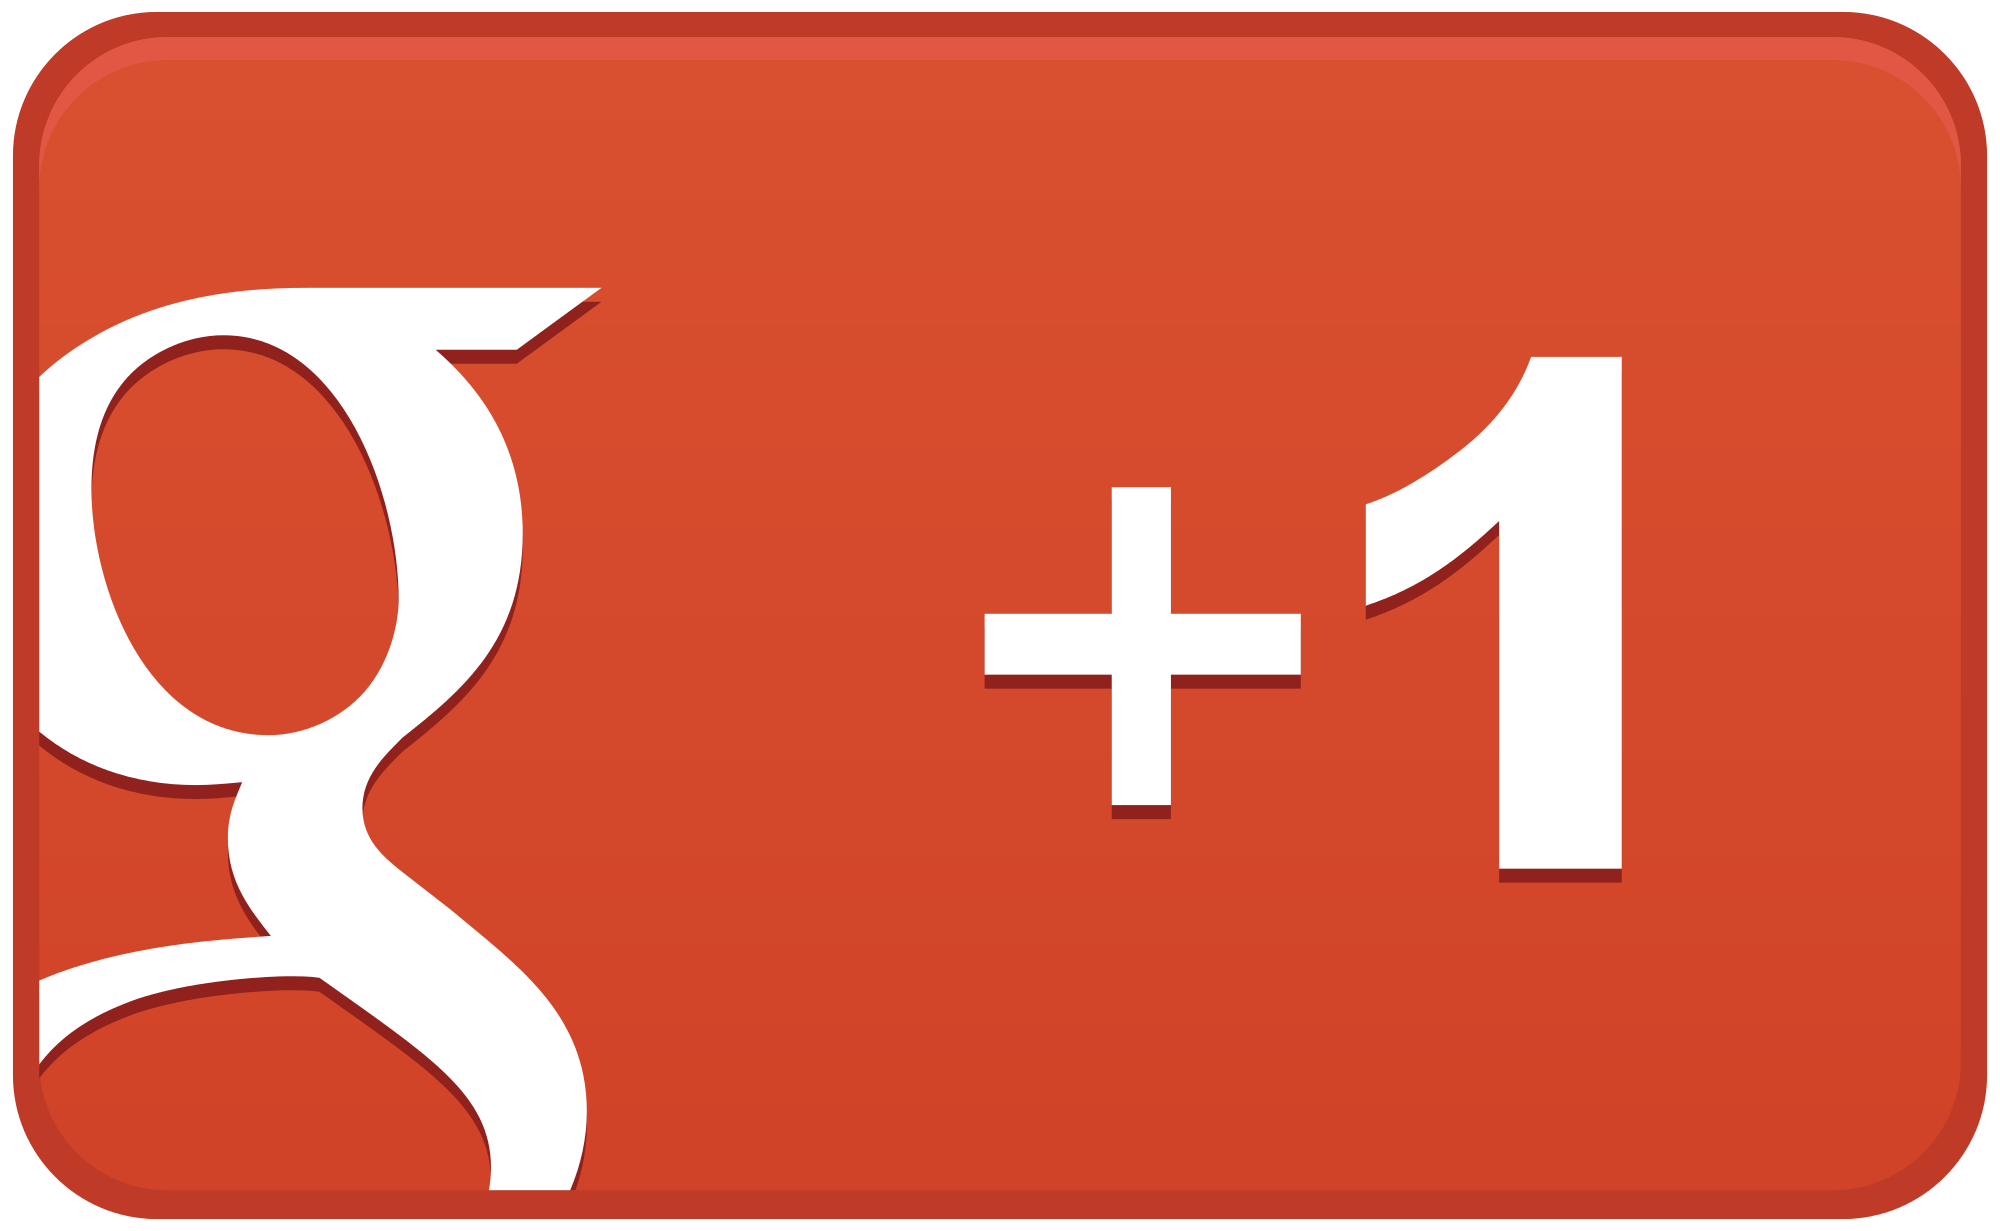 Google+ Android app will be receiving a 'core feature rewrite' in an upcoming update